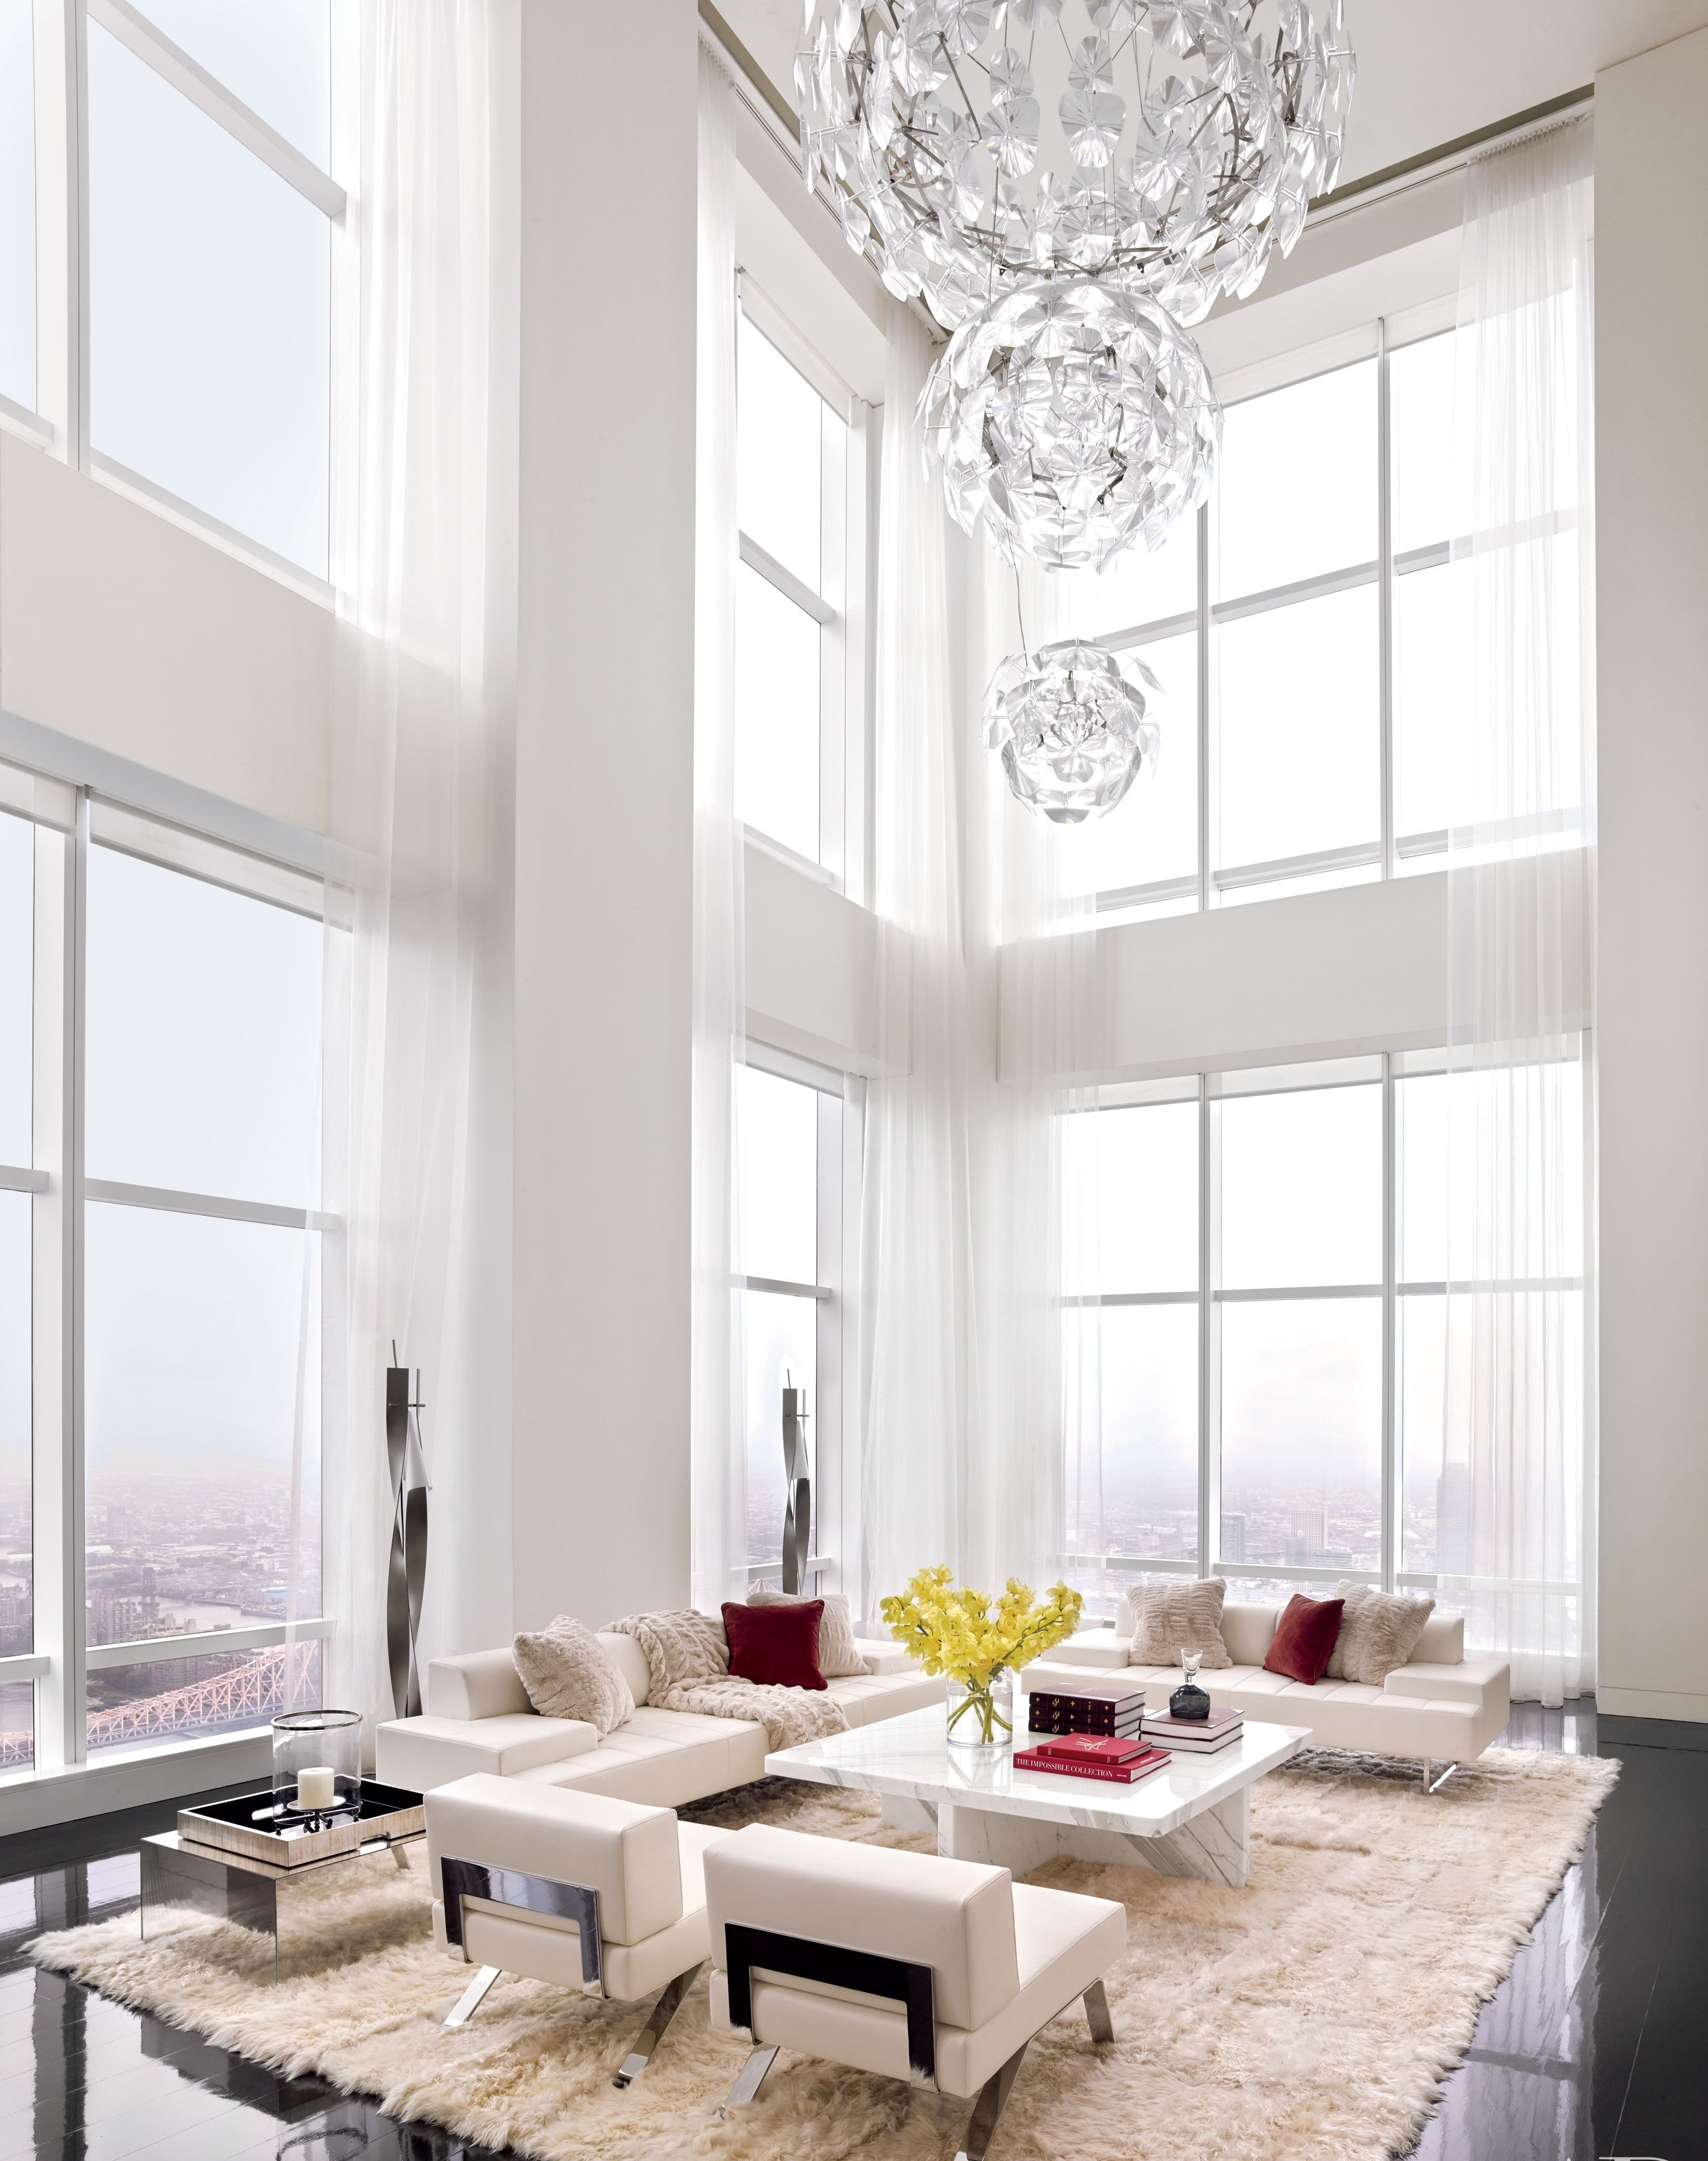 All White Living Room Design Ideas all white living room design ideas All White Living Room Design Ideas All White Living Room Design Ideas 05 1